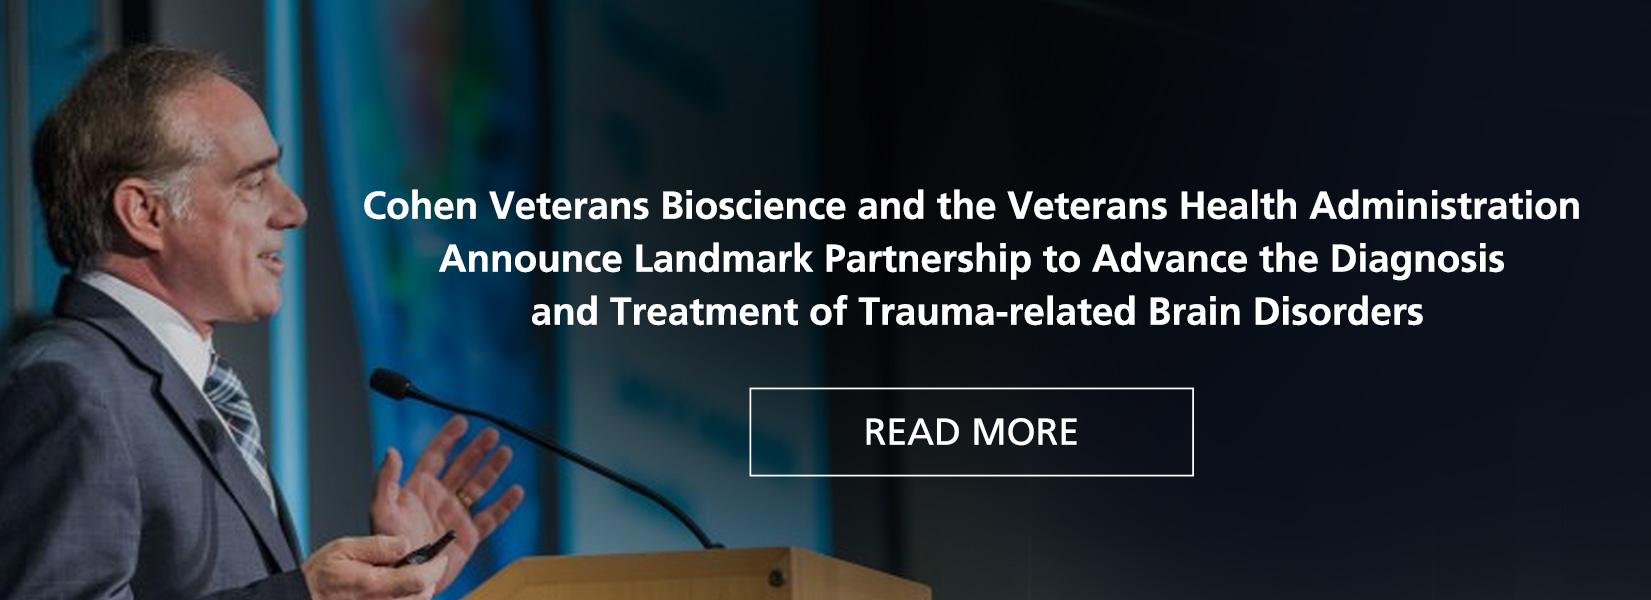 Cohen Veterans Bioscience and the Veterans Health Administration Announce Landmark Partnership